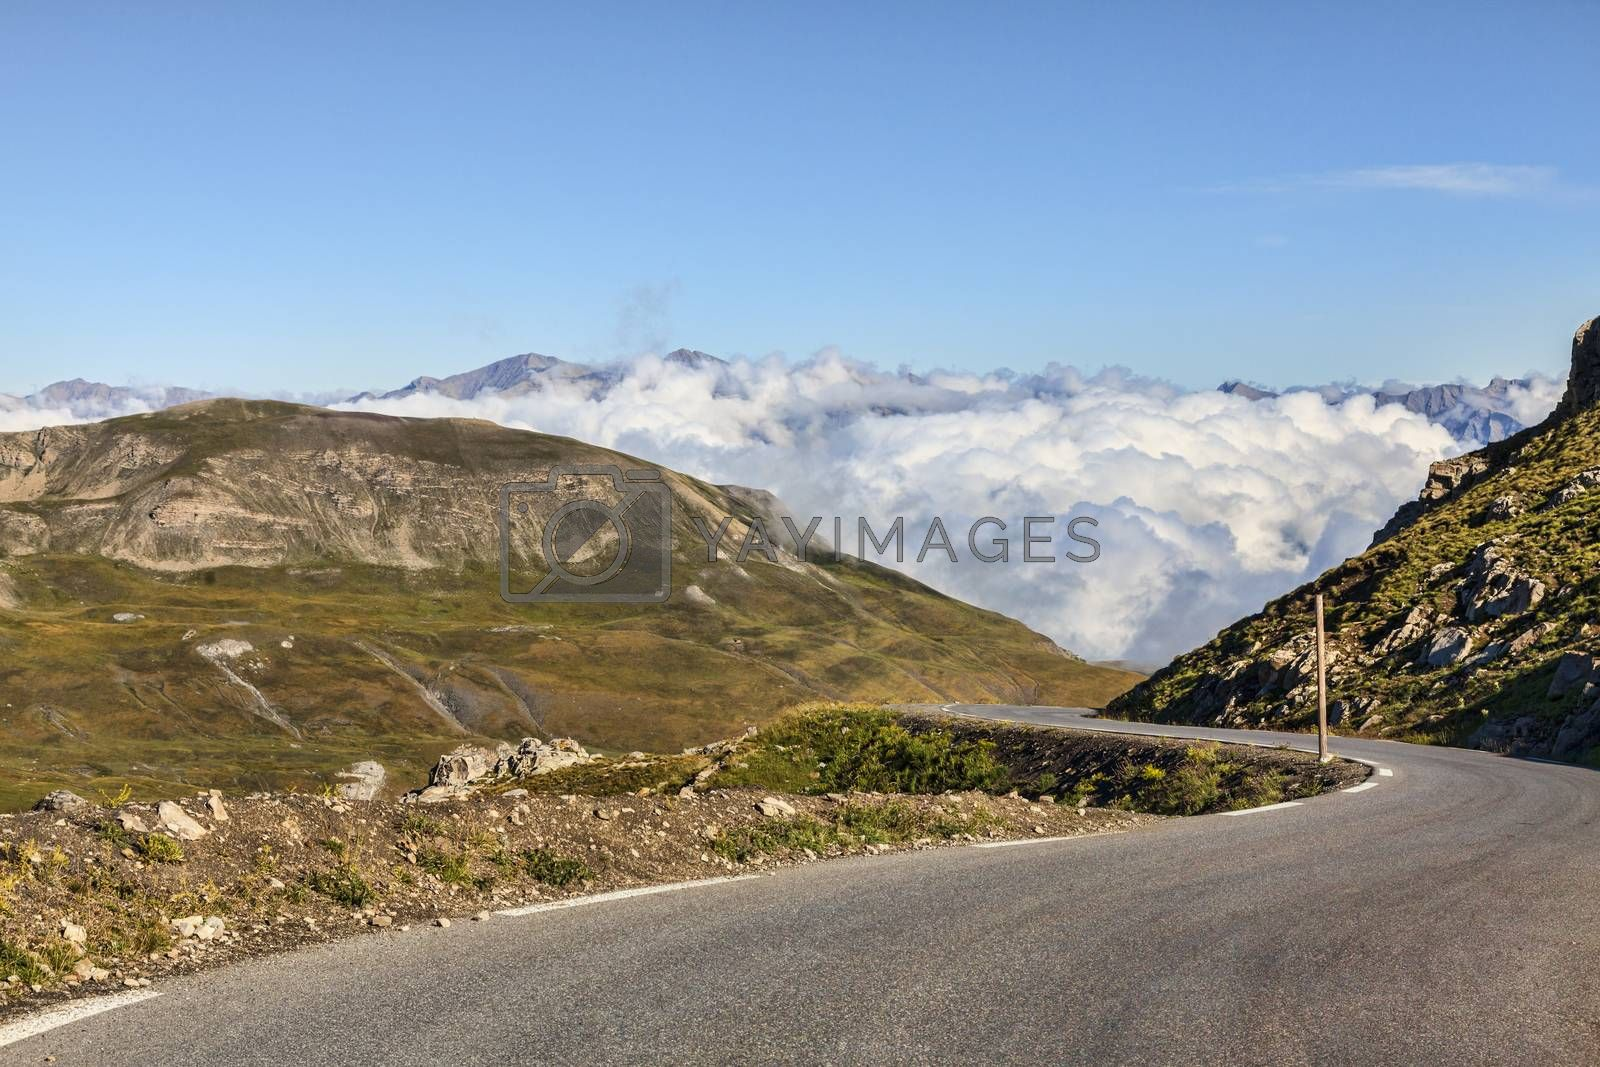 Image of the highest part of the road to Cime de la Bonette which is the highest asphalted road (2860 m) in Europe. It is located at the border between the  Alpes-Maritimes and Alpes-de-Haute-Provence in the Mercantour National Park in soth of France.